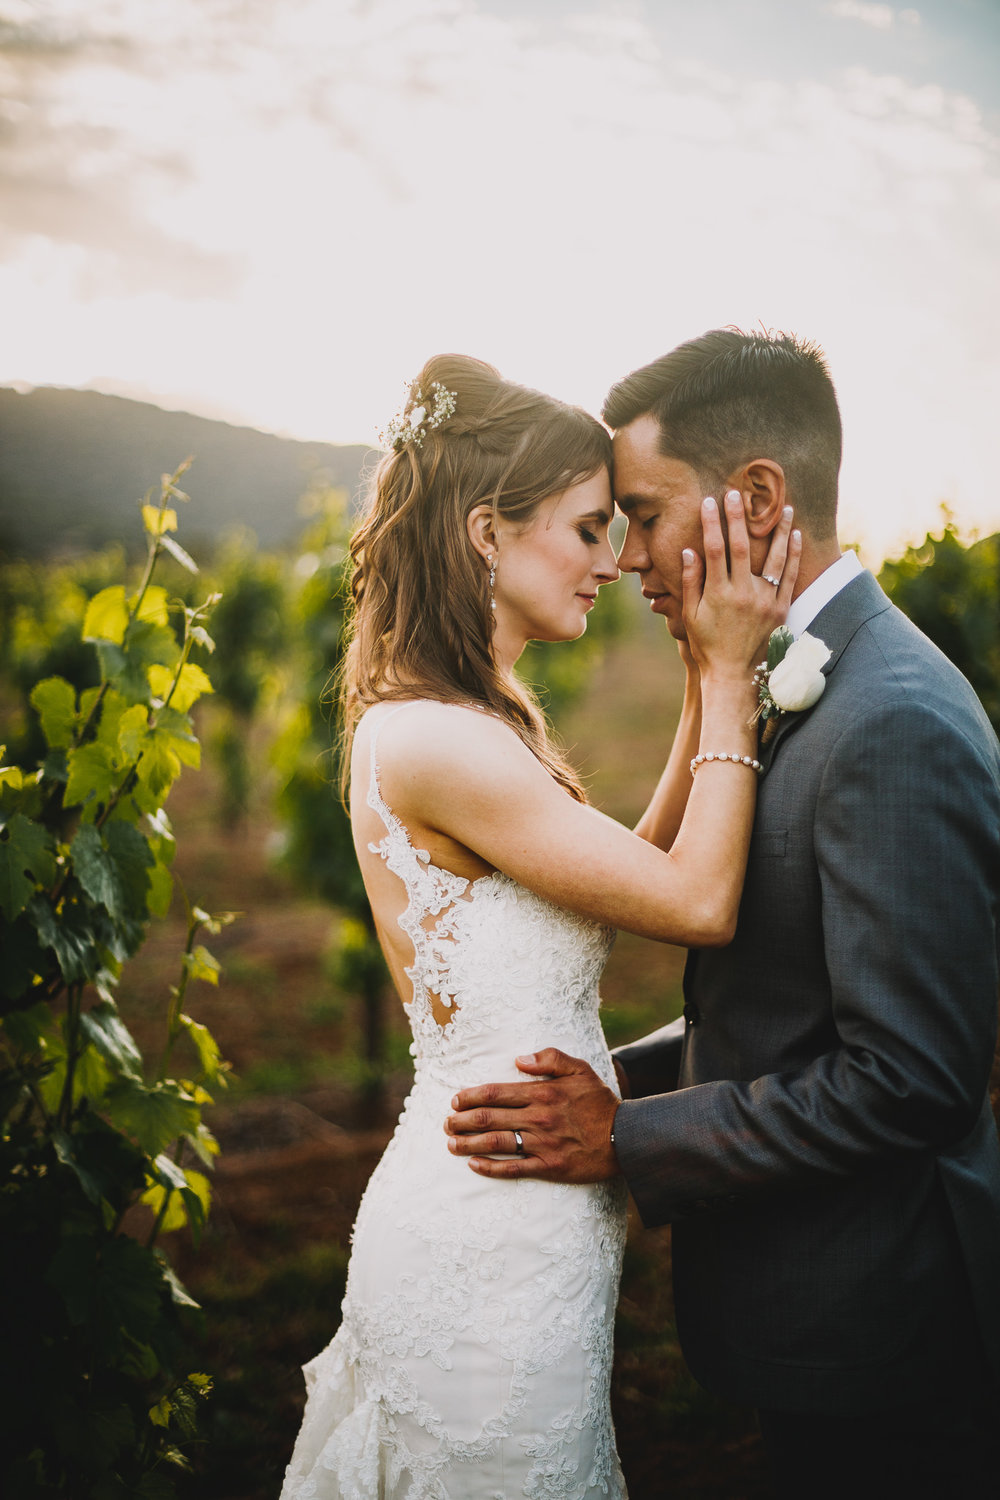 Archer Inspired Photography Kirigin Cellars Gilroy California SoCal Orange County Los Angeles Long Beach Lifestyle Wedding Elopement Engagement Photographer-450.jpg